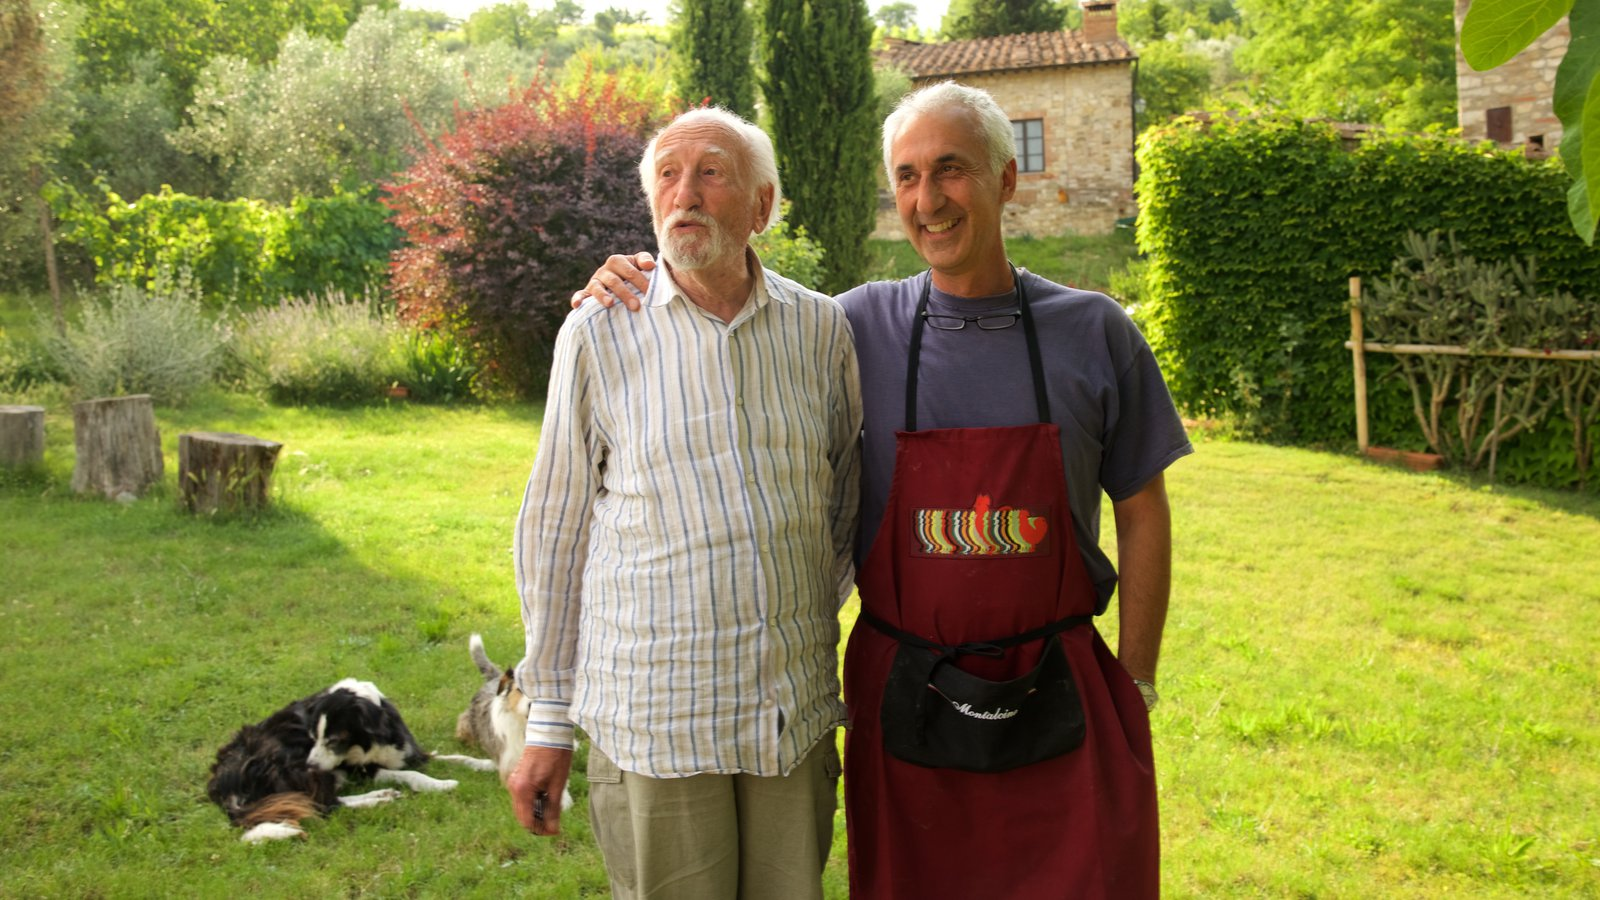 Castellina in Chianti as well as a small group of people